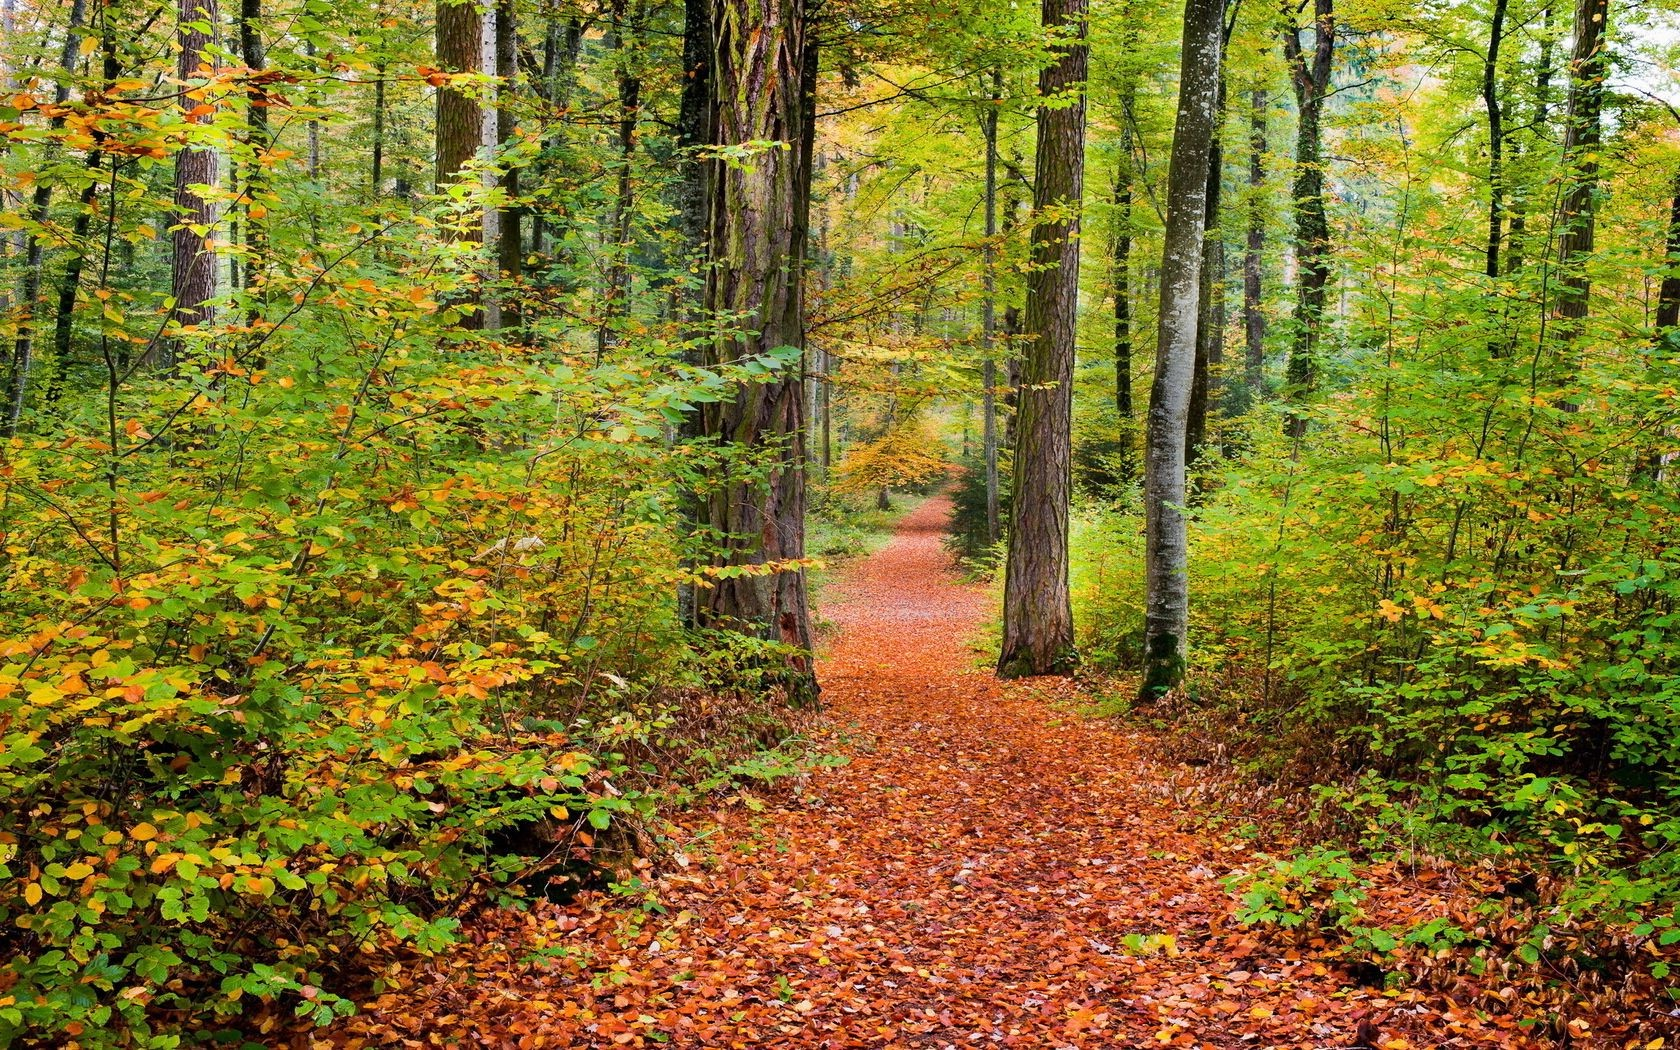 autumn fall leaf wood nature tree landscape park season footpath maple guidance scenic scenery beech environment fair weather lush gold outdoors scene